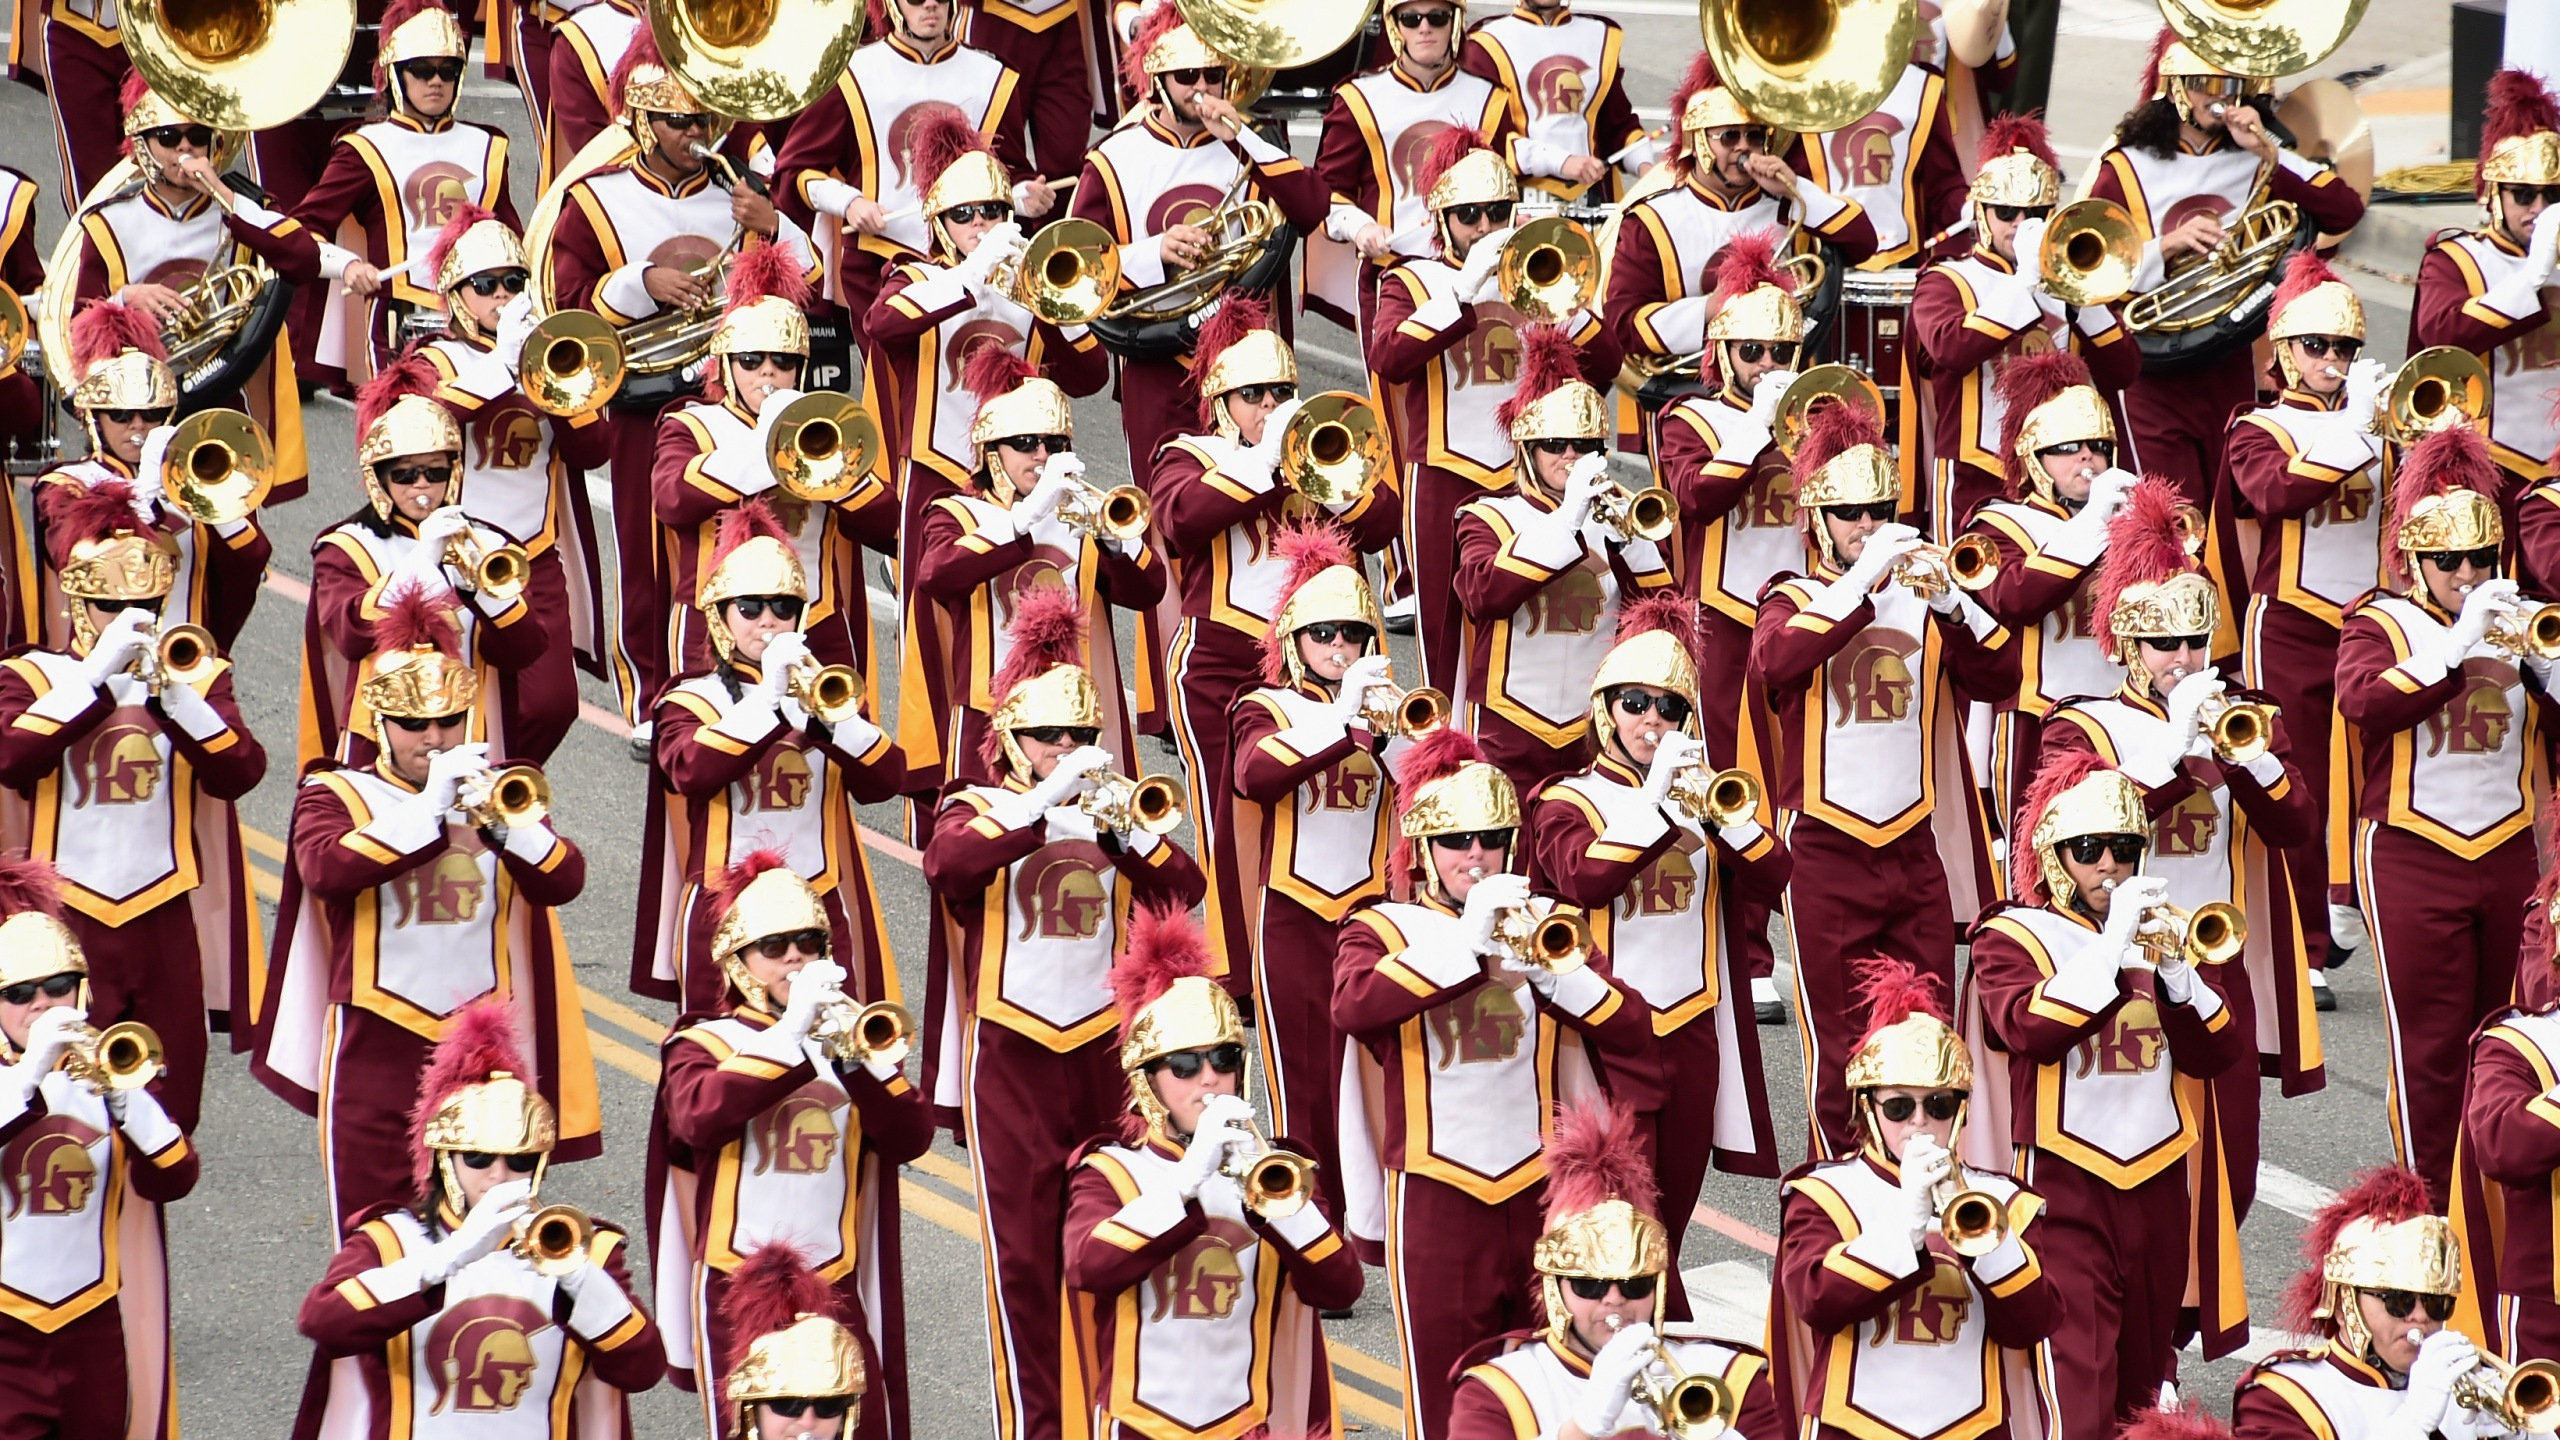 The USC Marching Band participates in the 128th Tournament of Roses Parade on Jan. 2, 2017, in Pasadena, California. (Credit: Alberto E. Rodriguez/Getty Images)